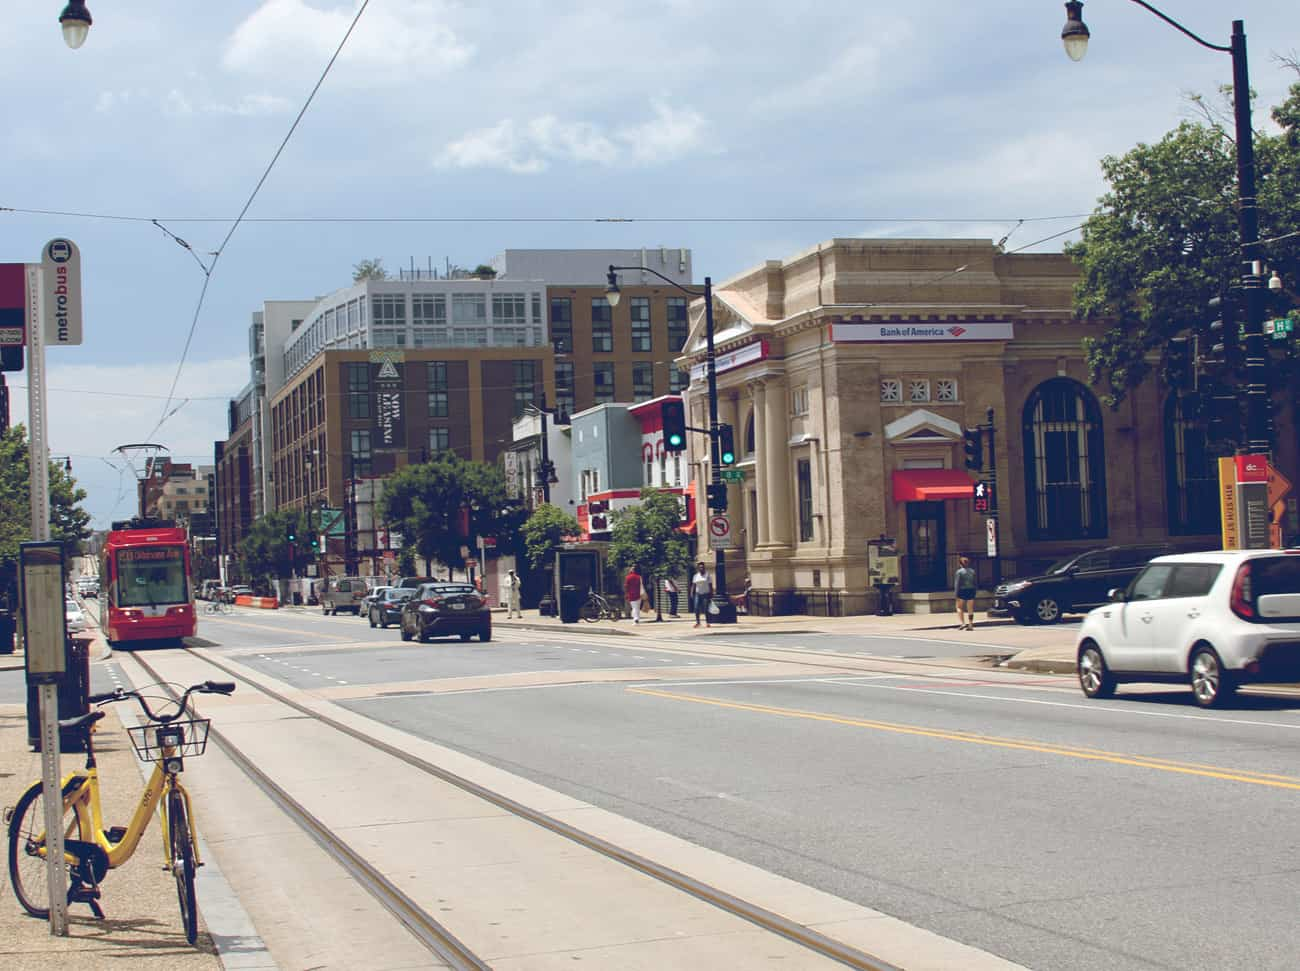 View looking down H Street